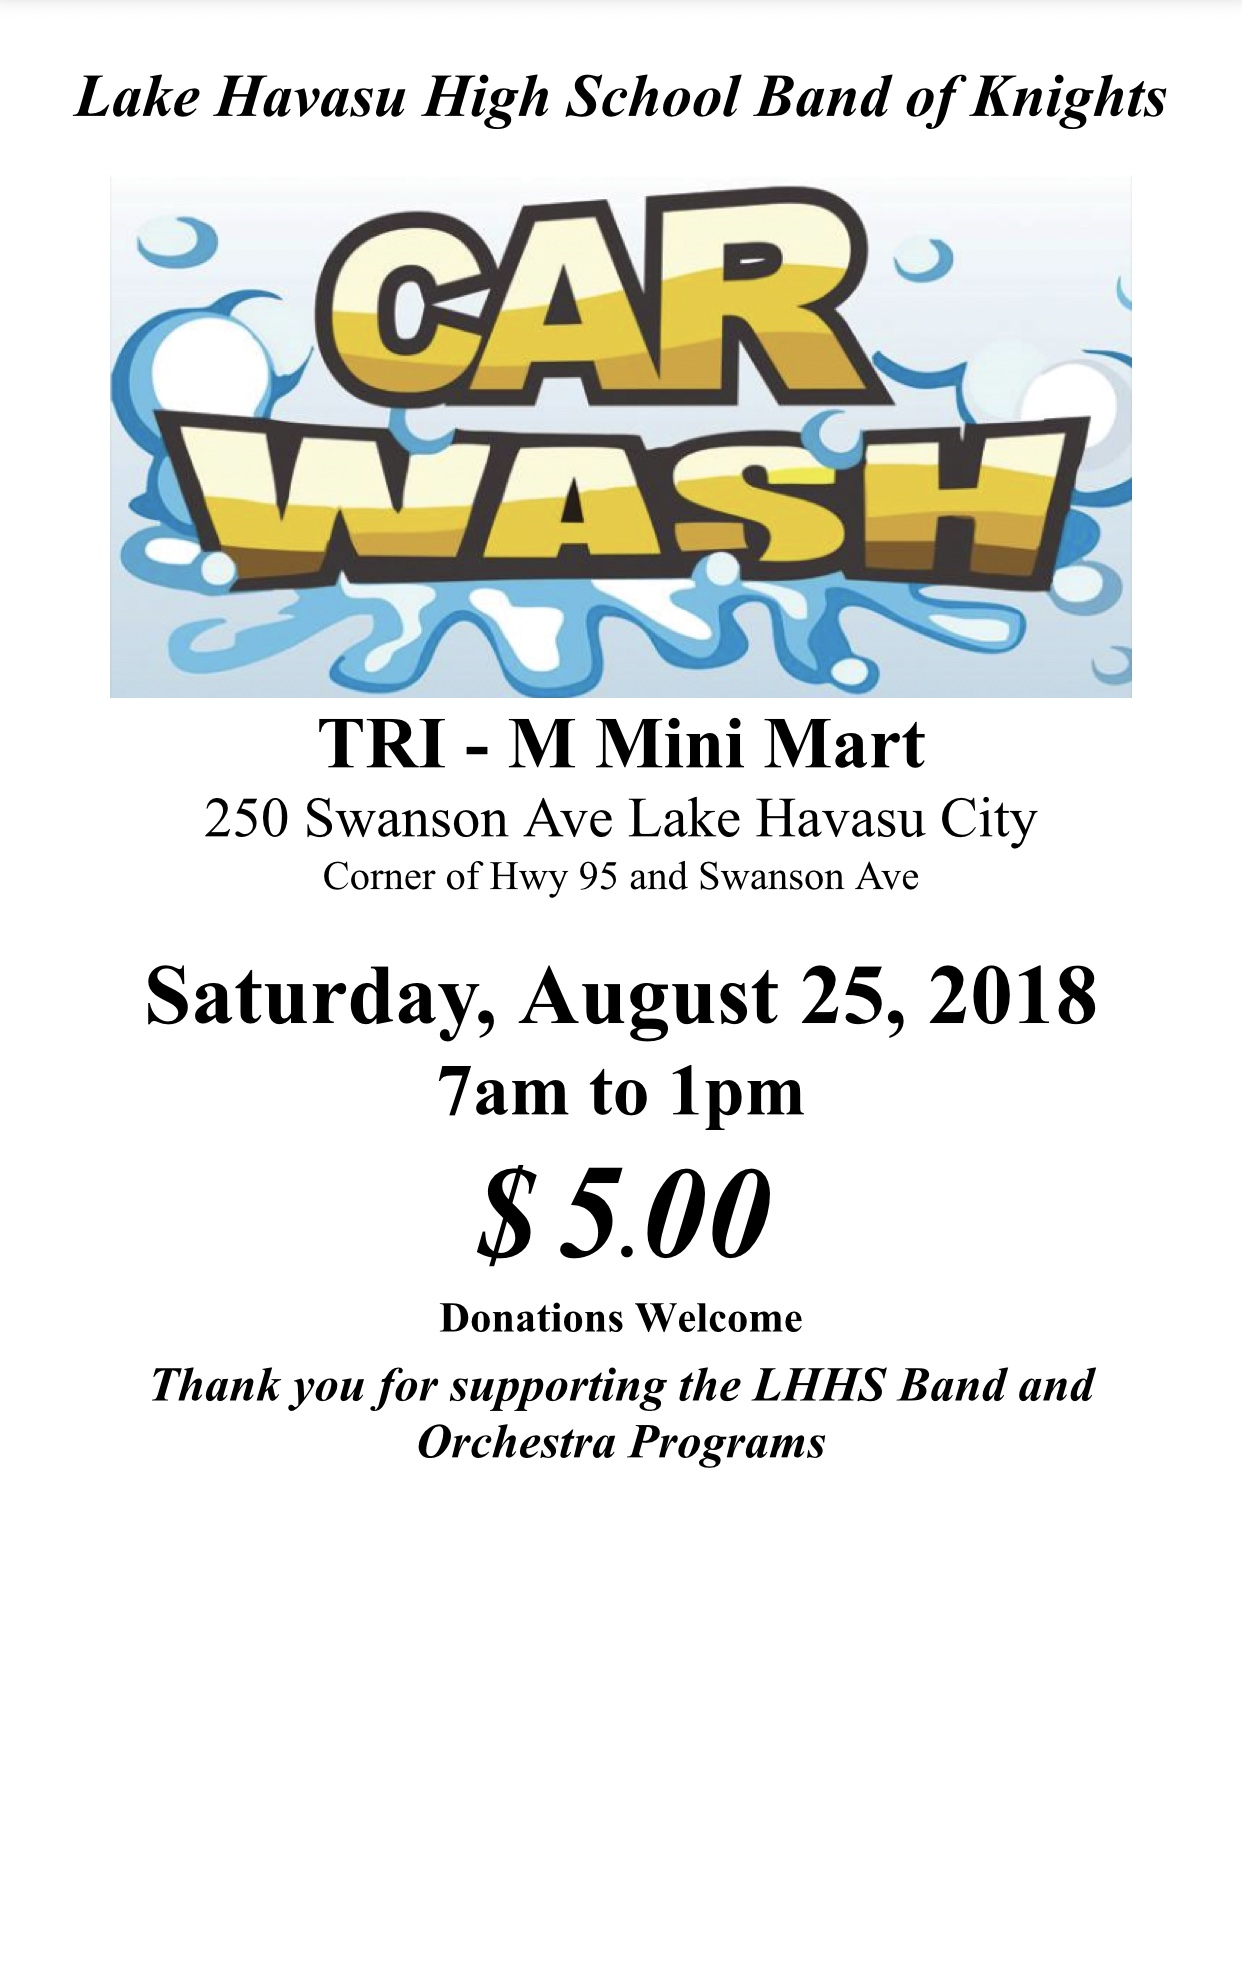 LHHS BAND OF KNIGHTS CAR WASH FUNDRAISER